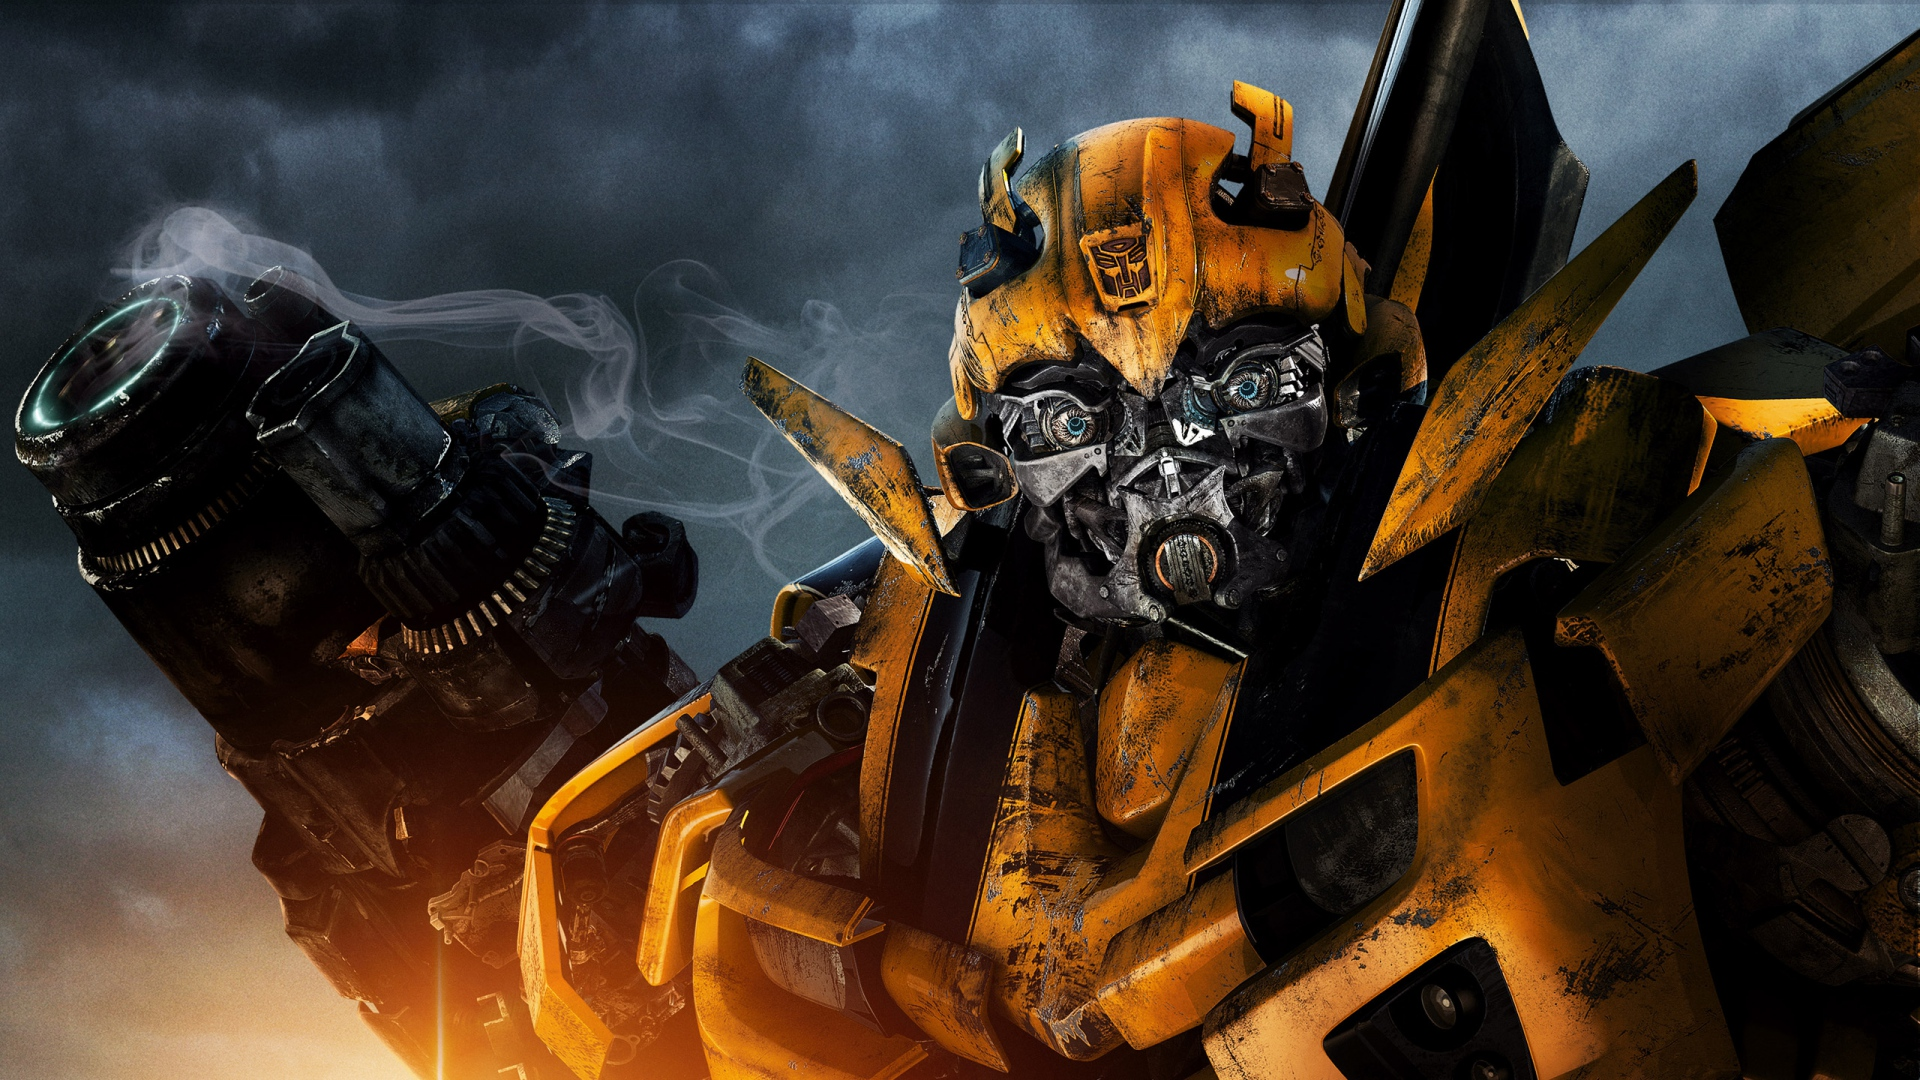 HD Transformer Wallpapers/Backgrounds